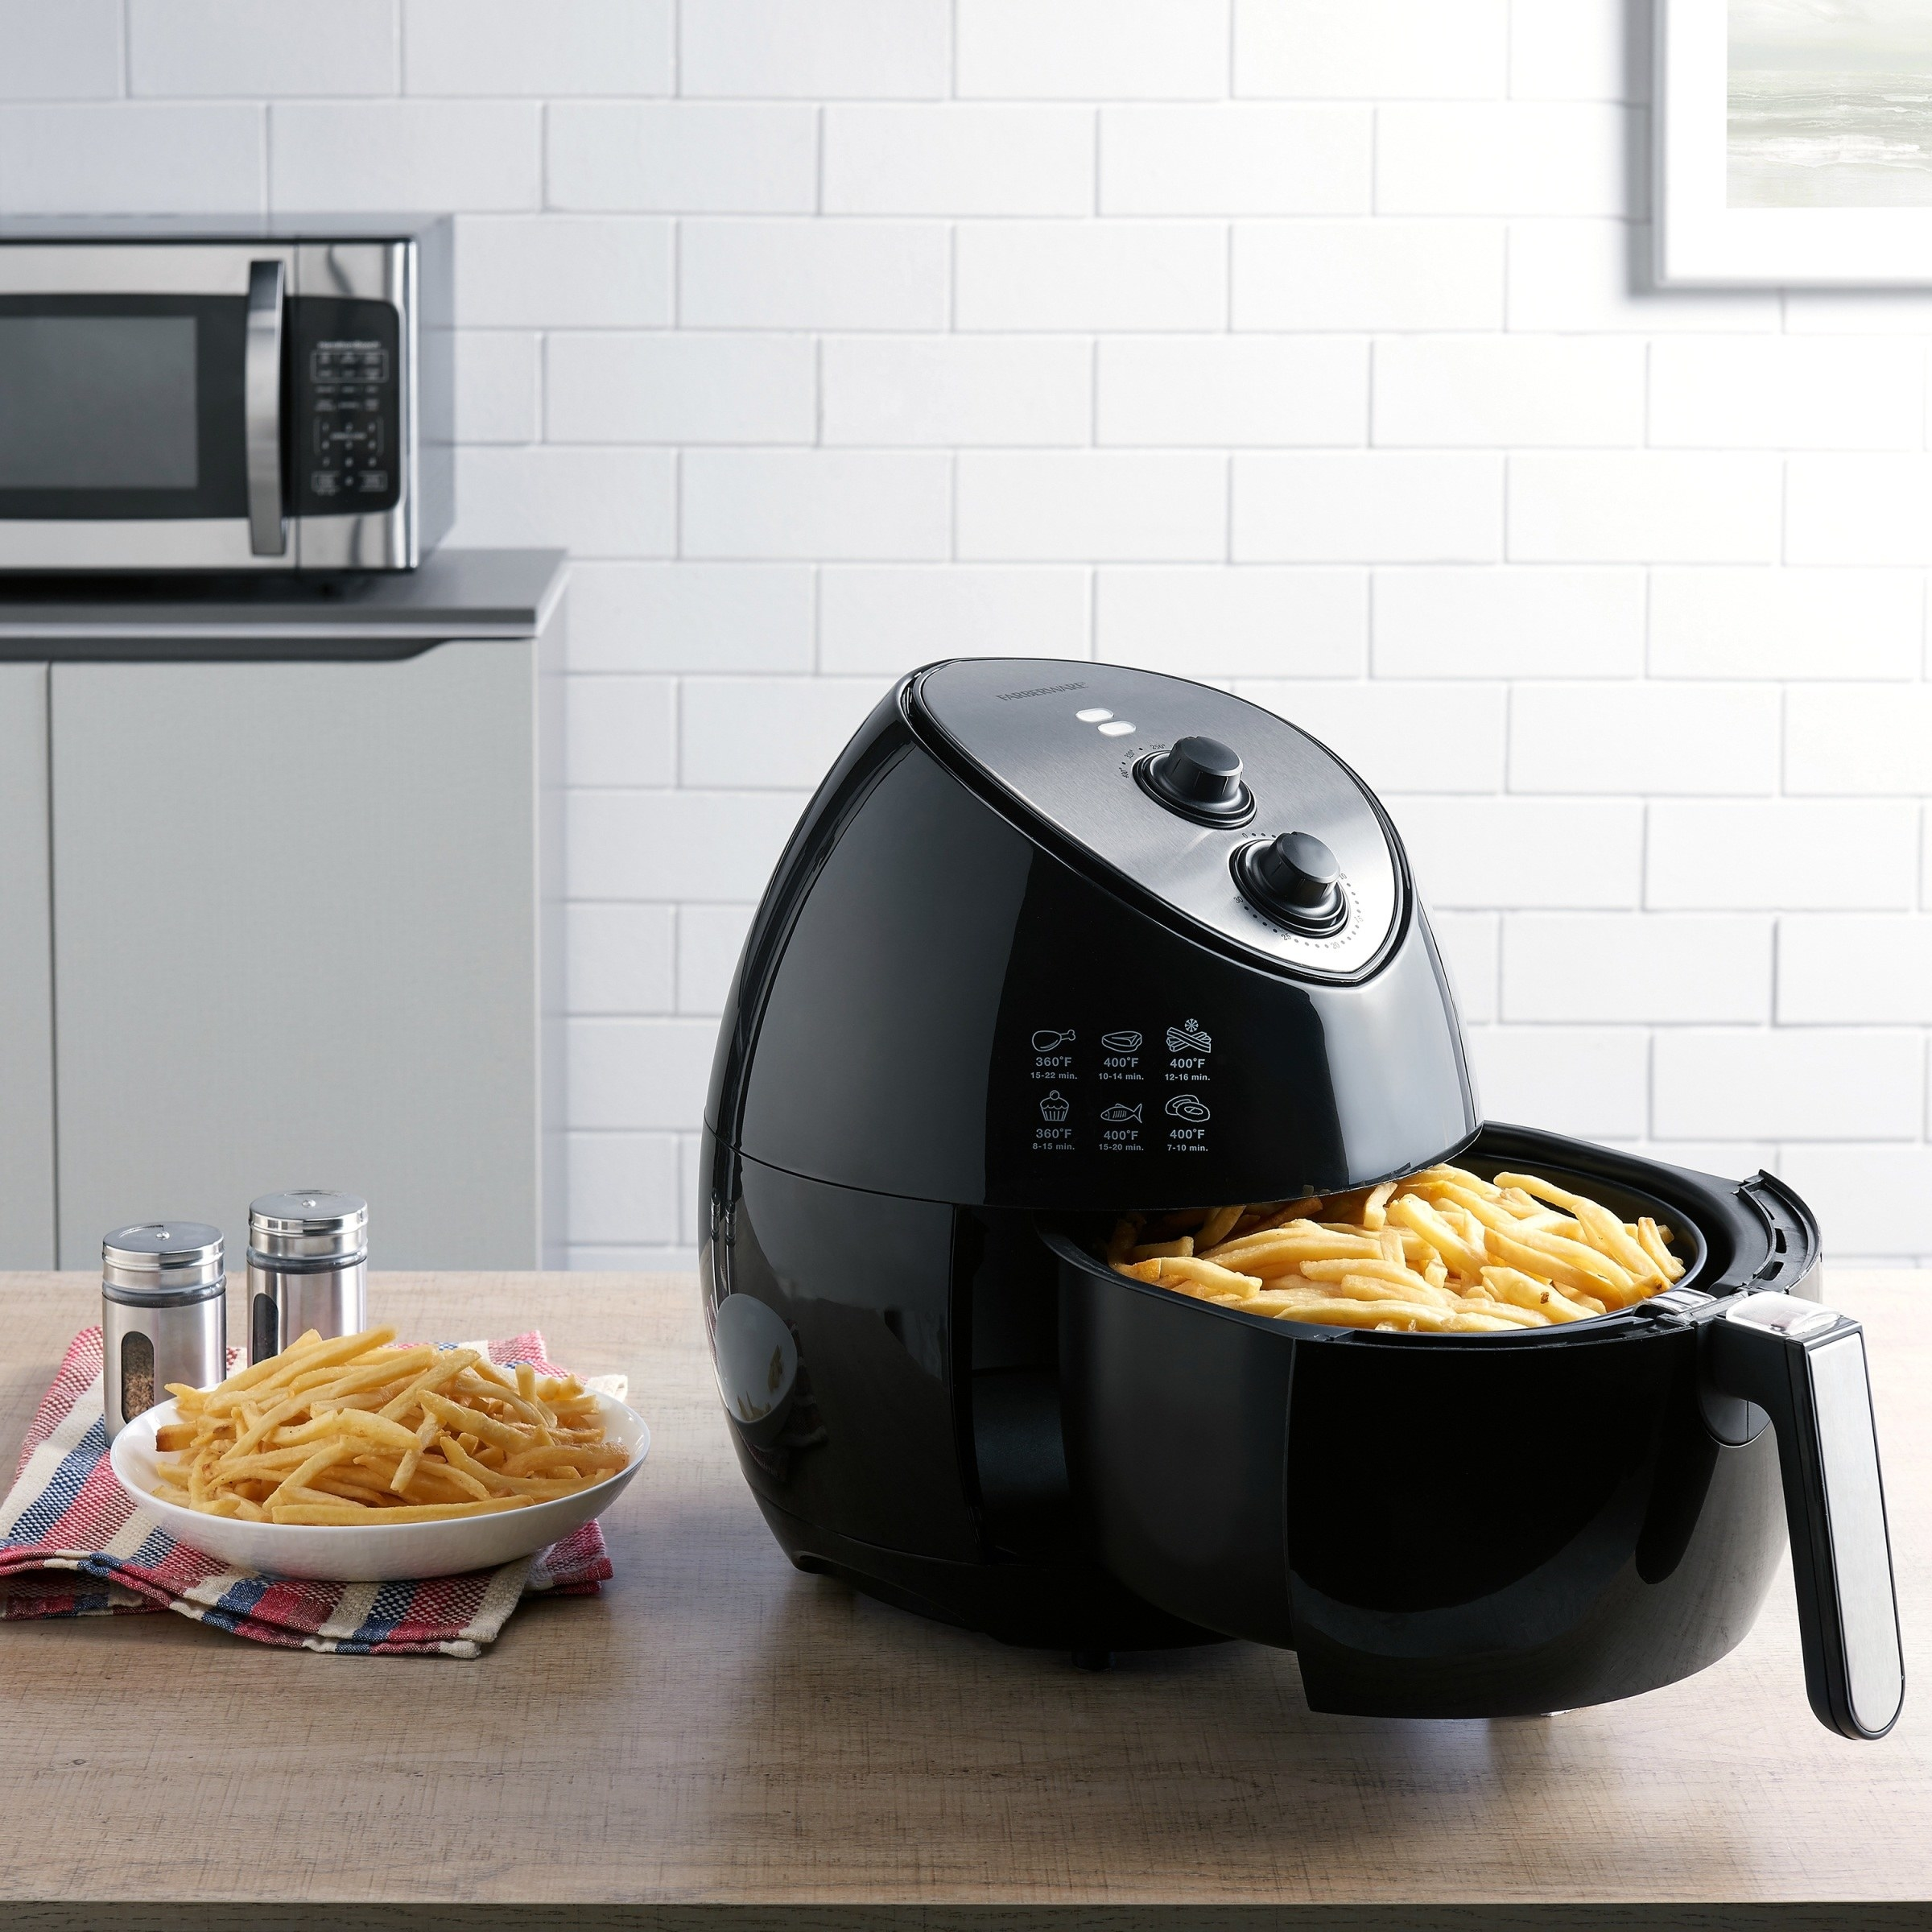 The air fryer in a kitchen, filled with fries